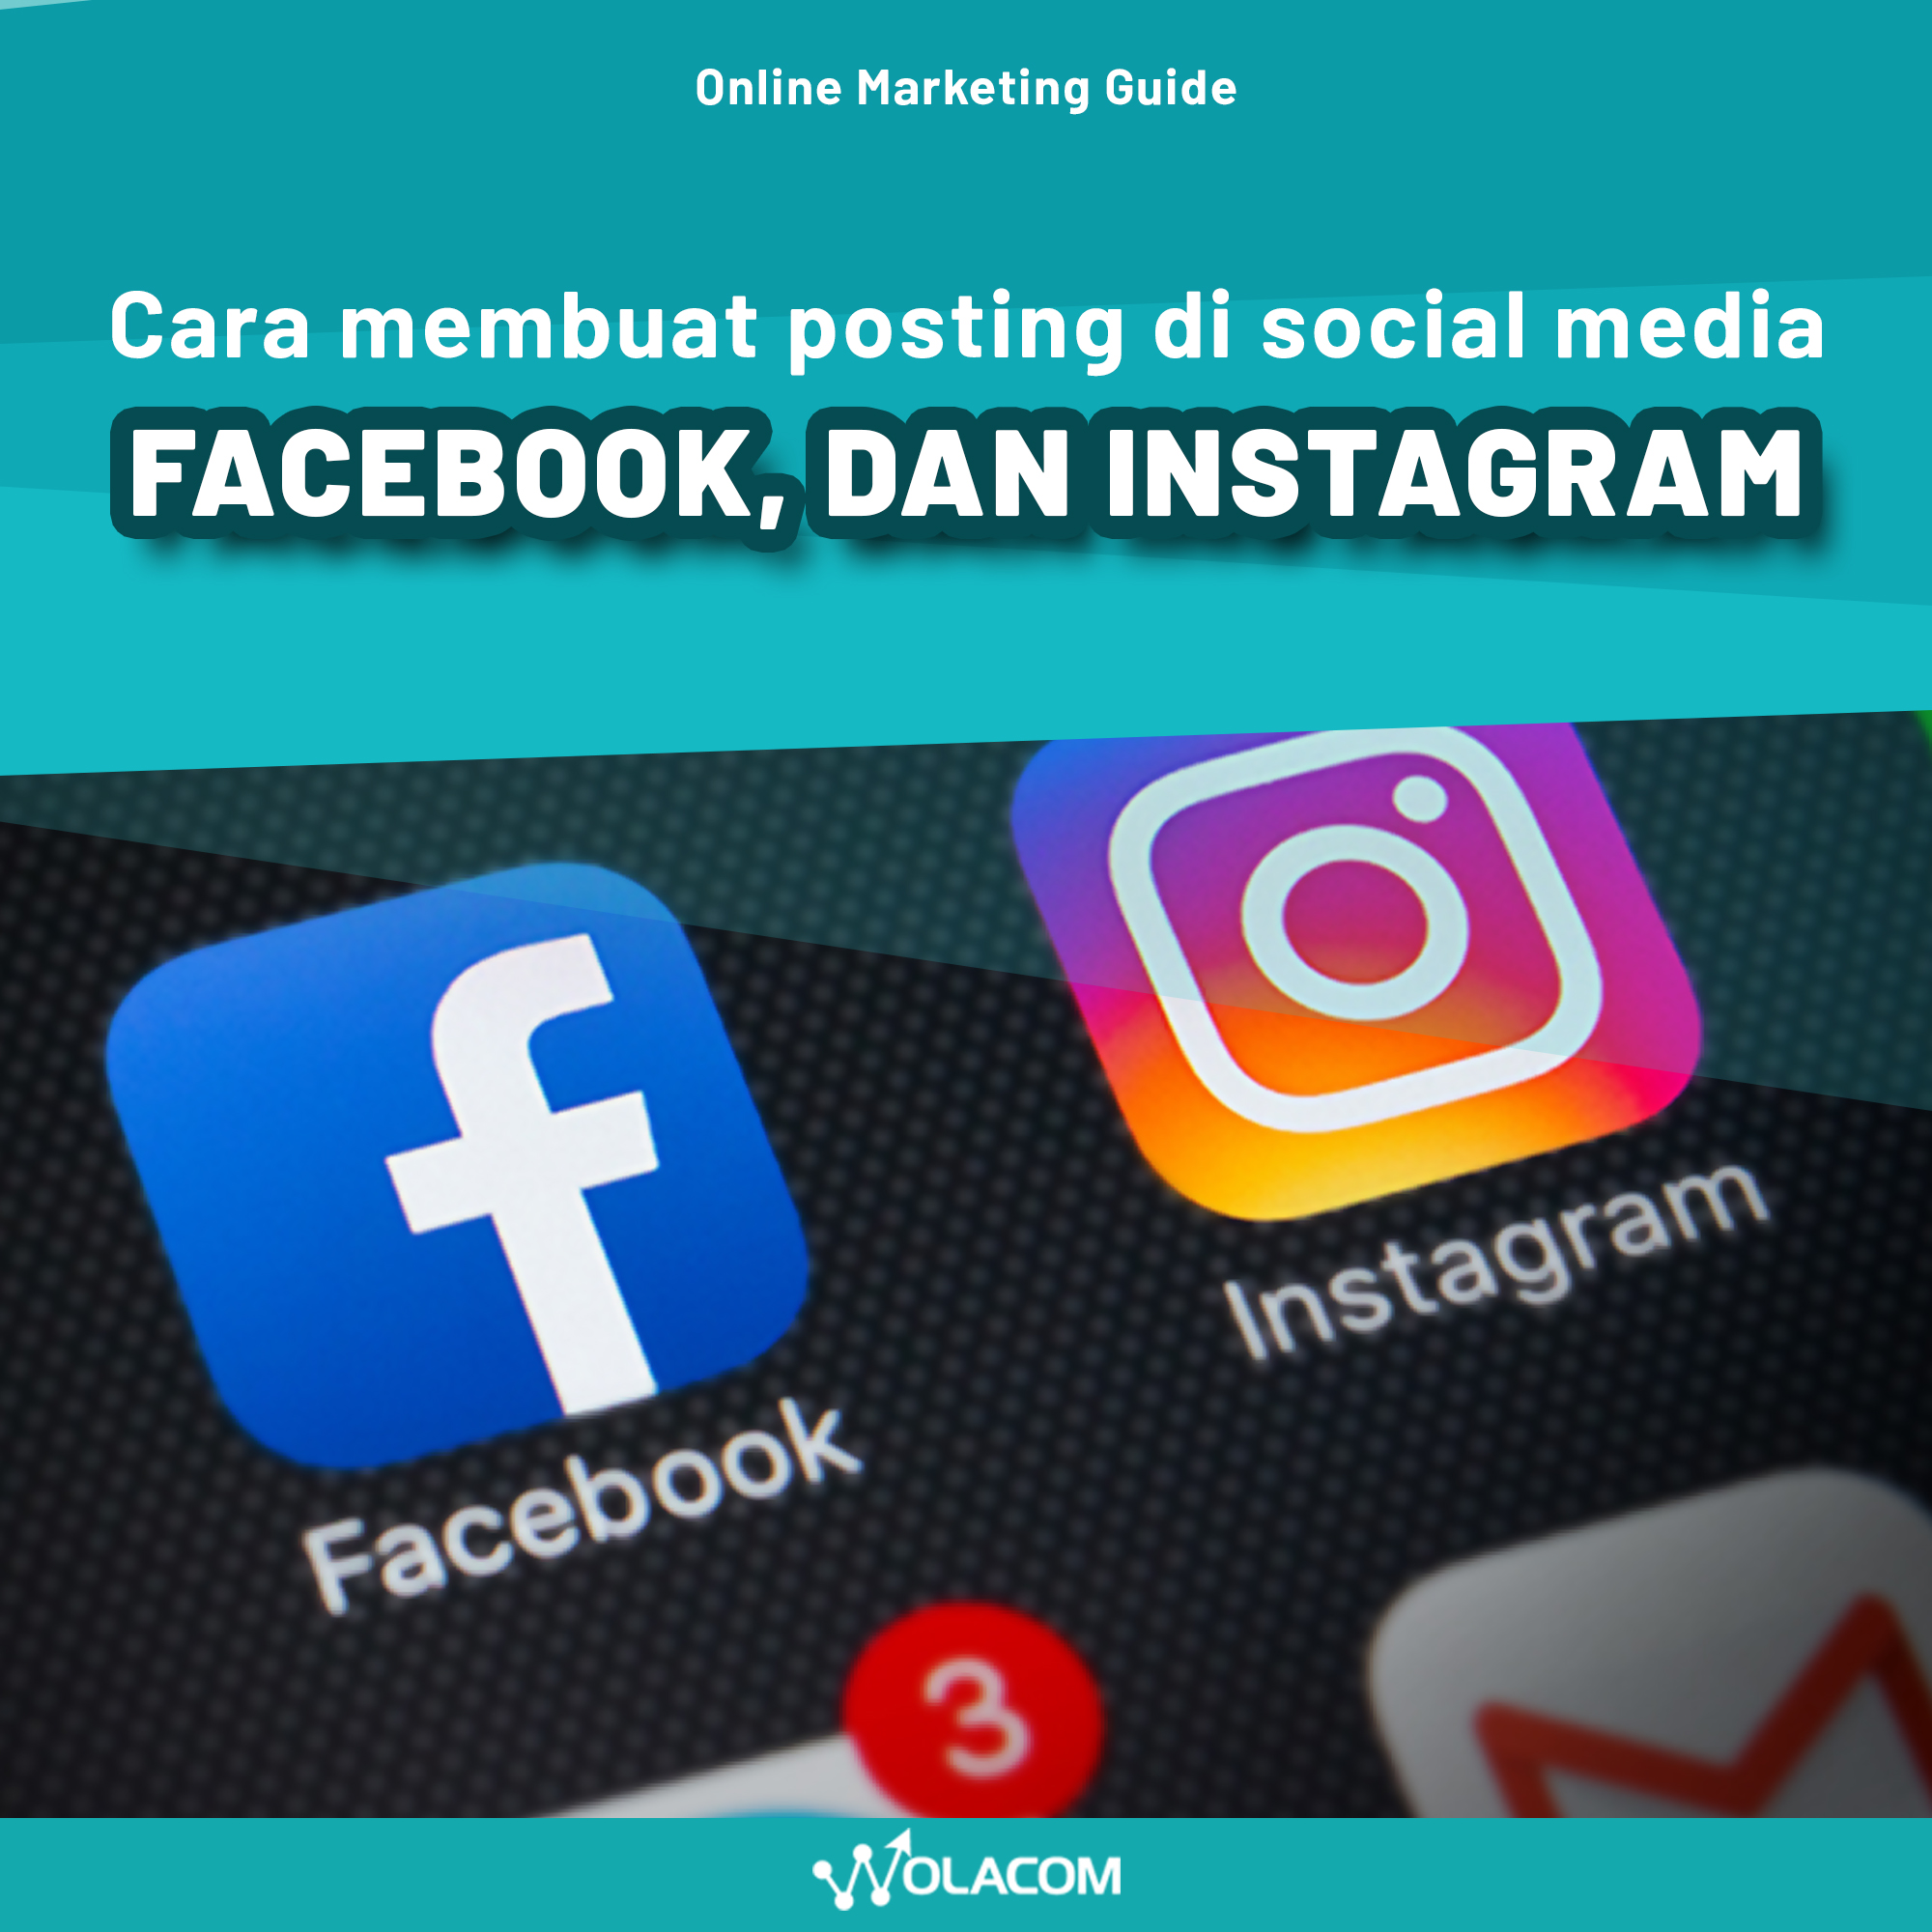 Cara Posting di Social Media Facebook, Instagram - Online Marketing Guidance